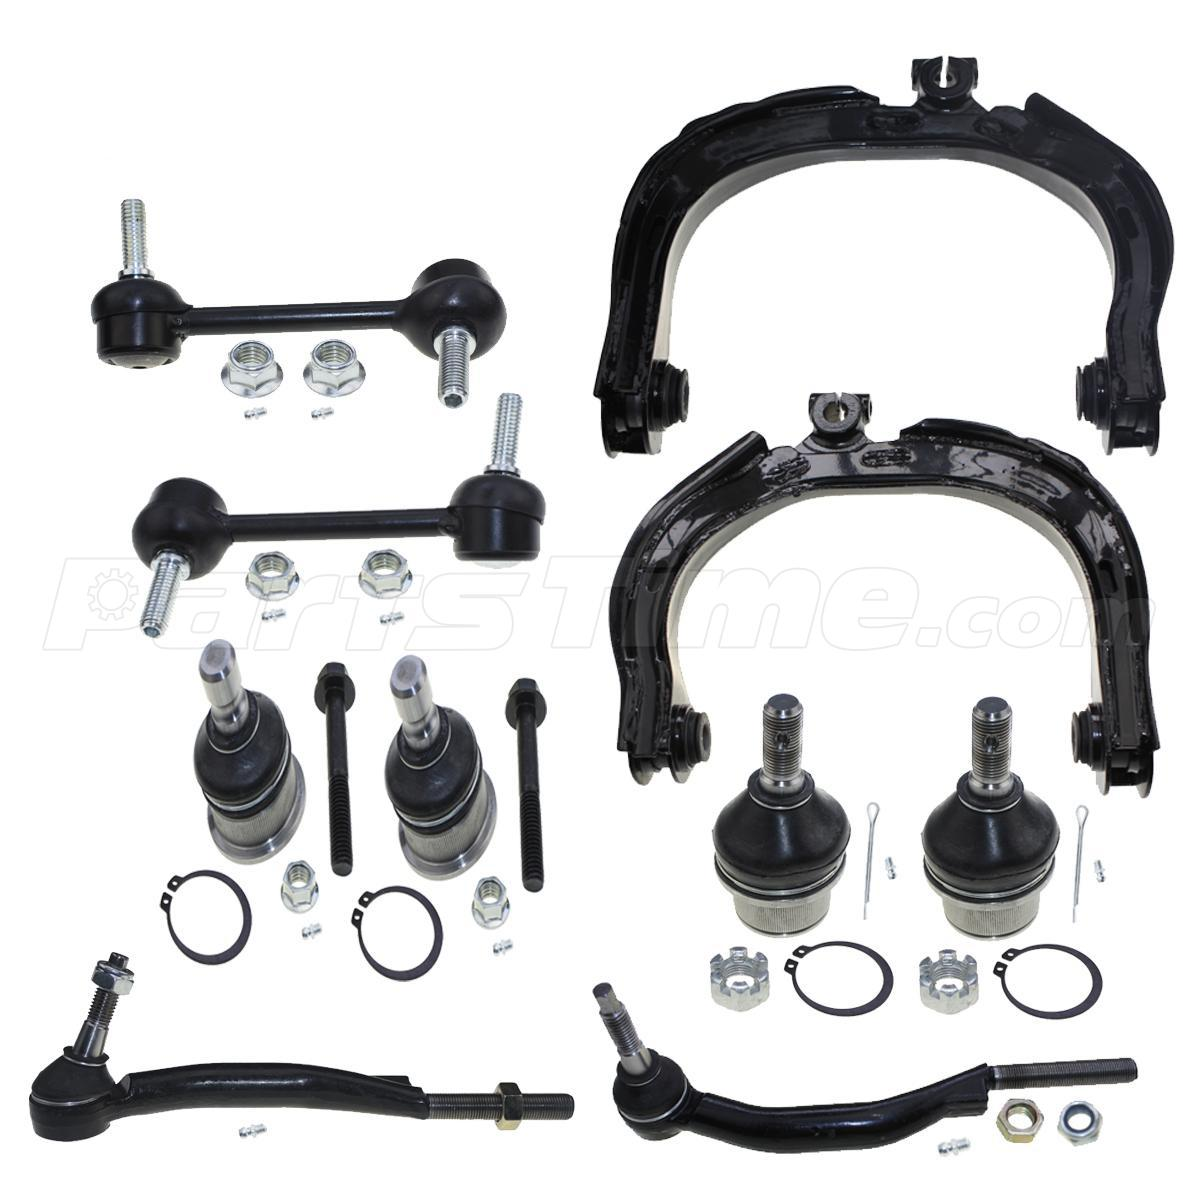 2005 Buick Rainier Rear Air Suspension: 10 PCS Front Suspension Kit Control Arm For 2002-2007